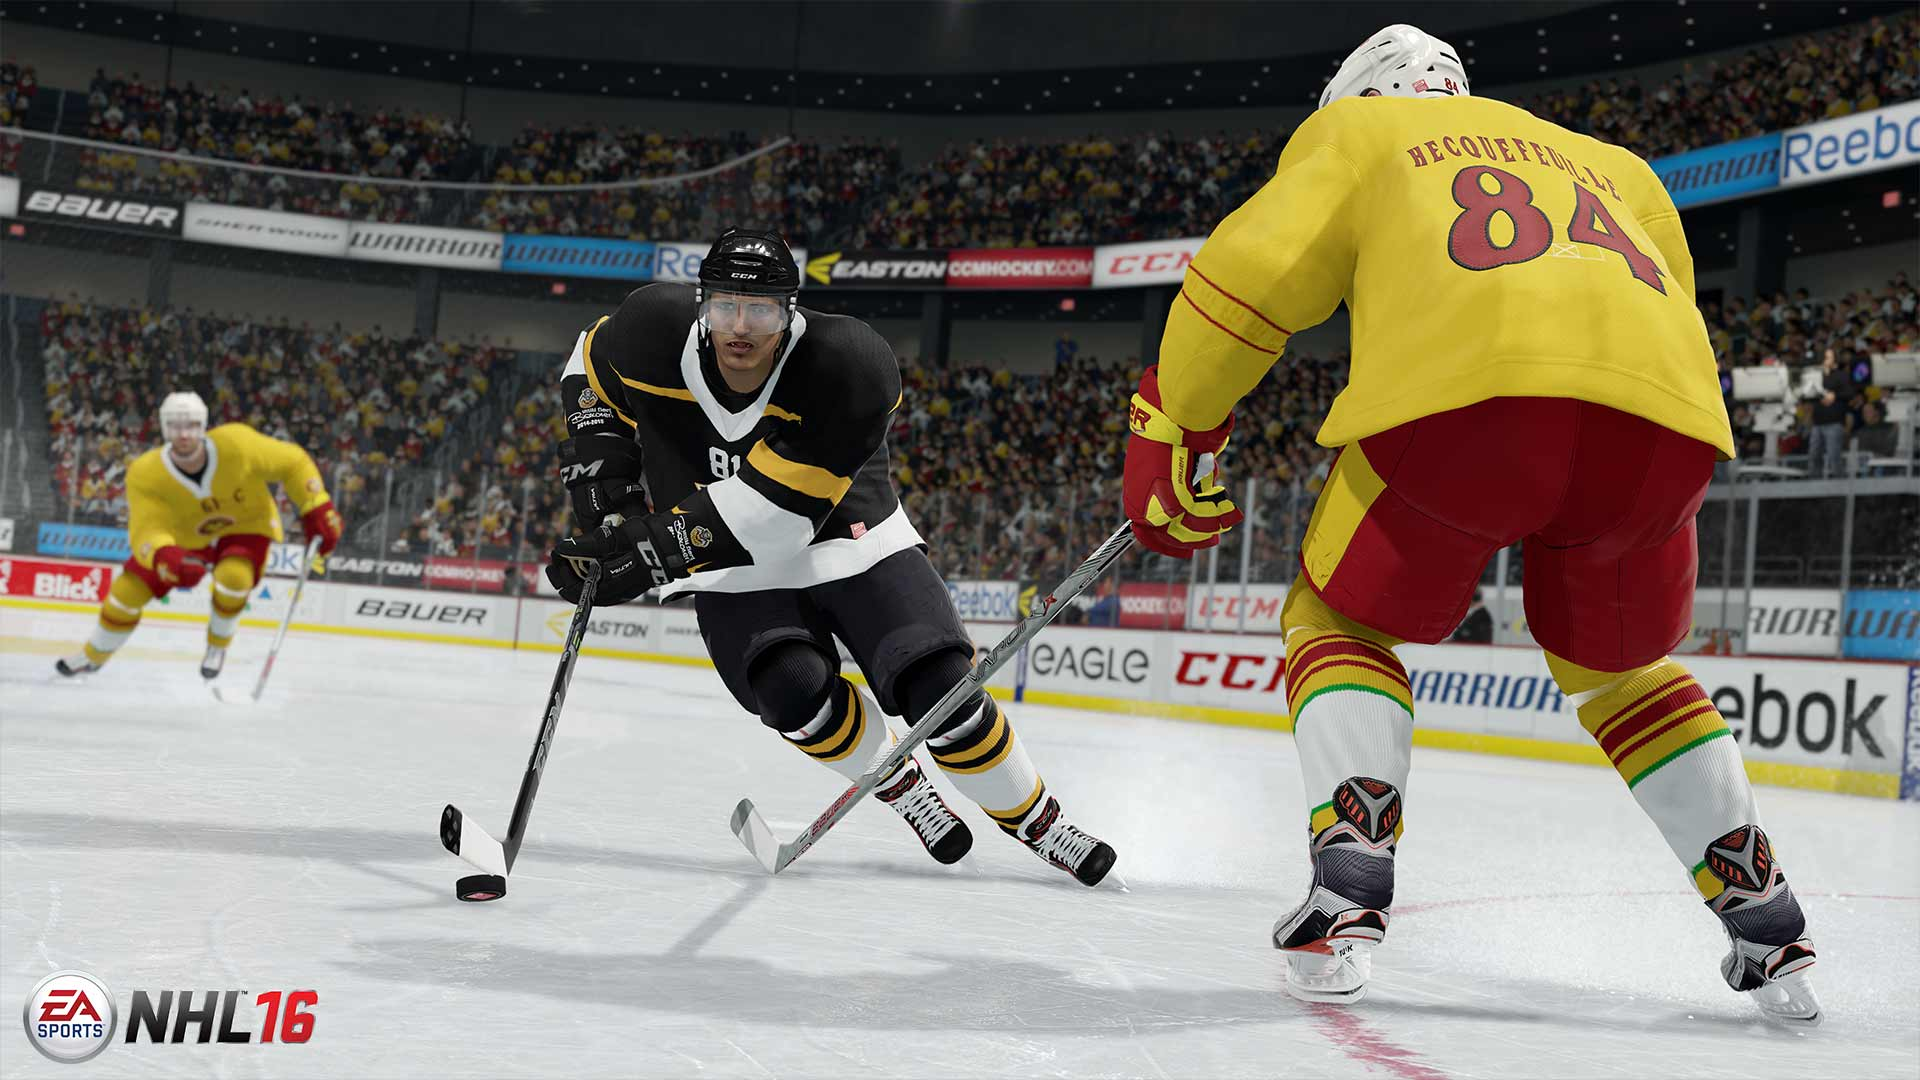 NHL16-EU-Lugano-Home-2-1920x1080-WM